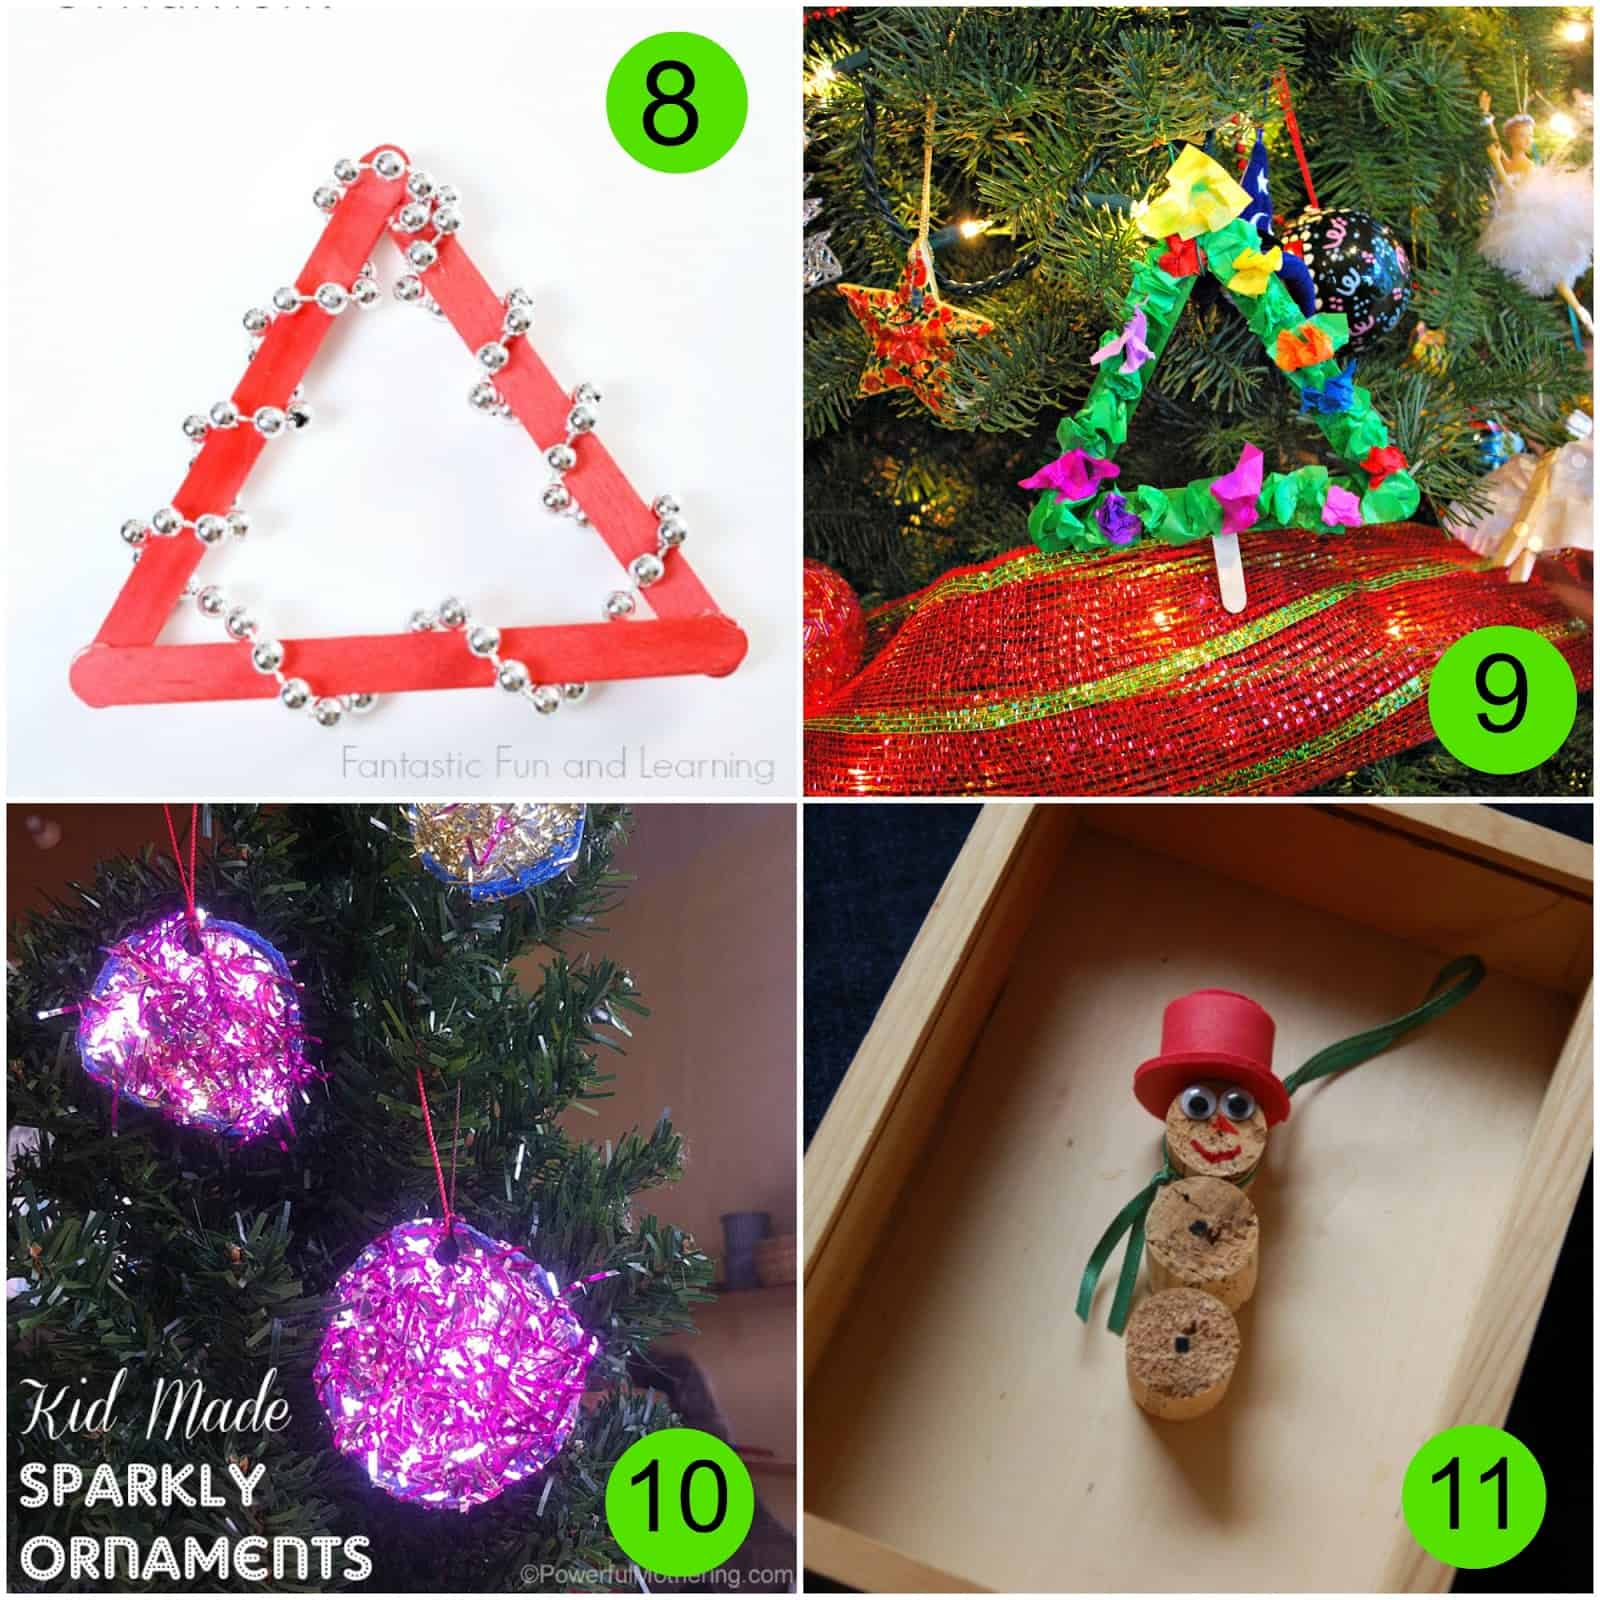 Handmade christmas tree ornaments ideas - Easy Beaded Christmas Tree Ornament From Fantastic Fun And Learning 9 Making Ornaments From Mess For Less 10 Sparkly Tinsel Ornaments From Powerful